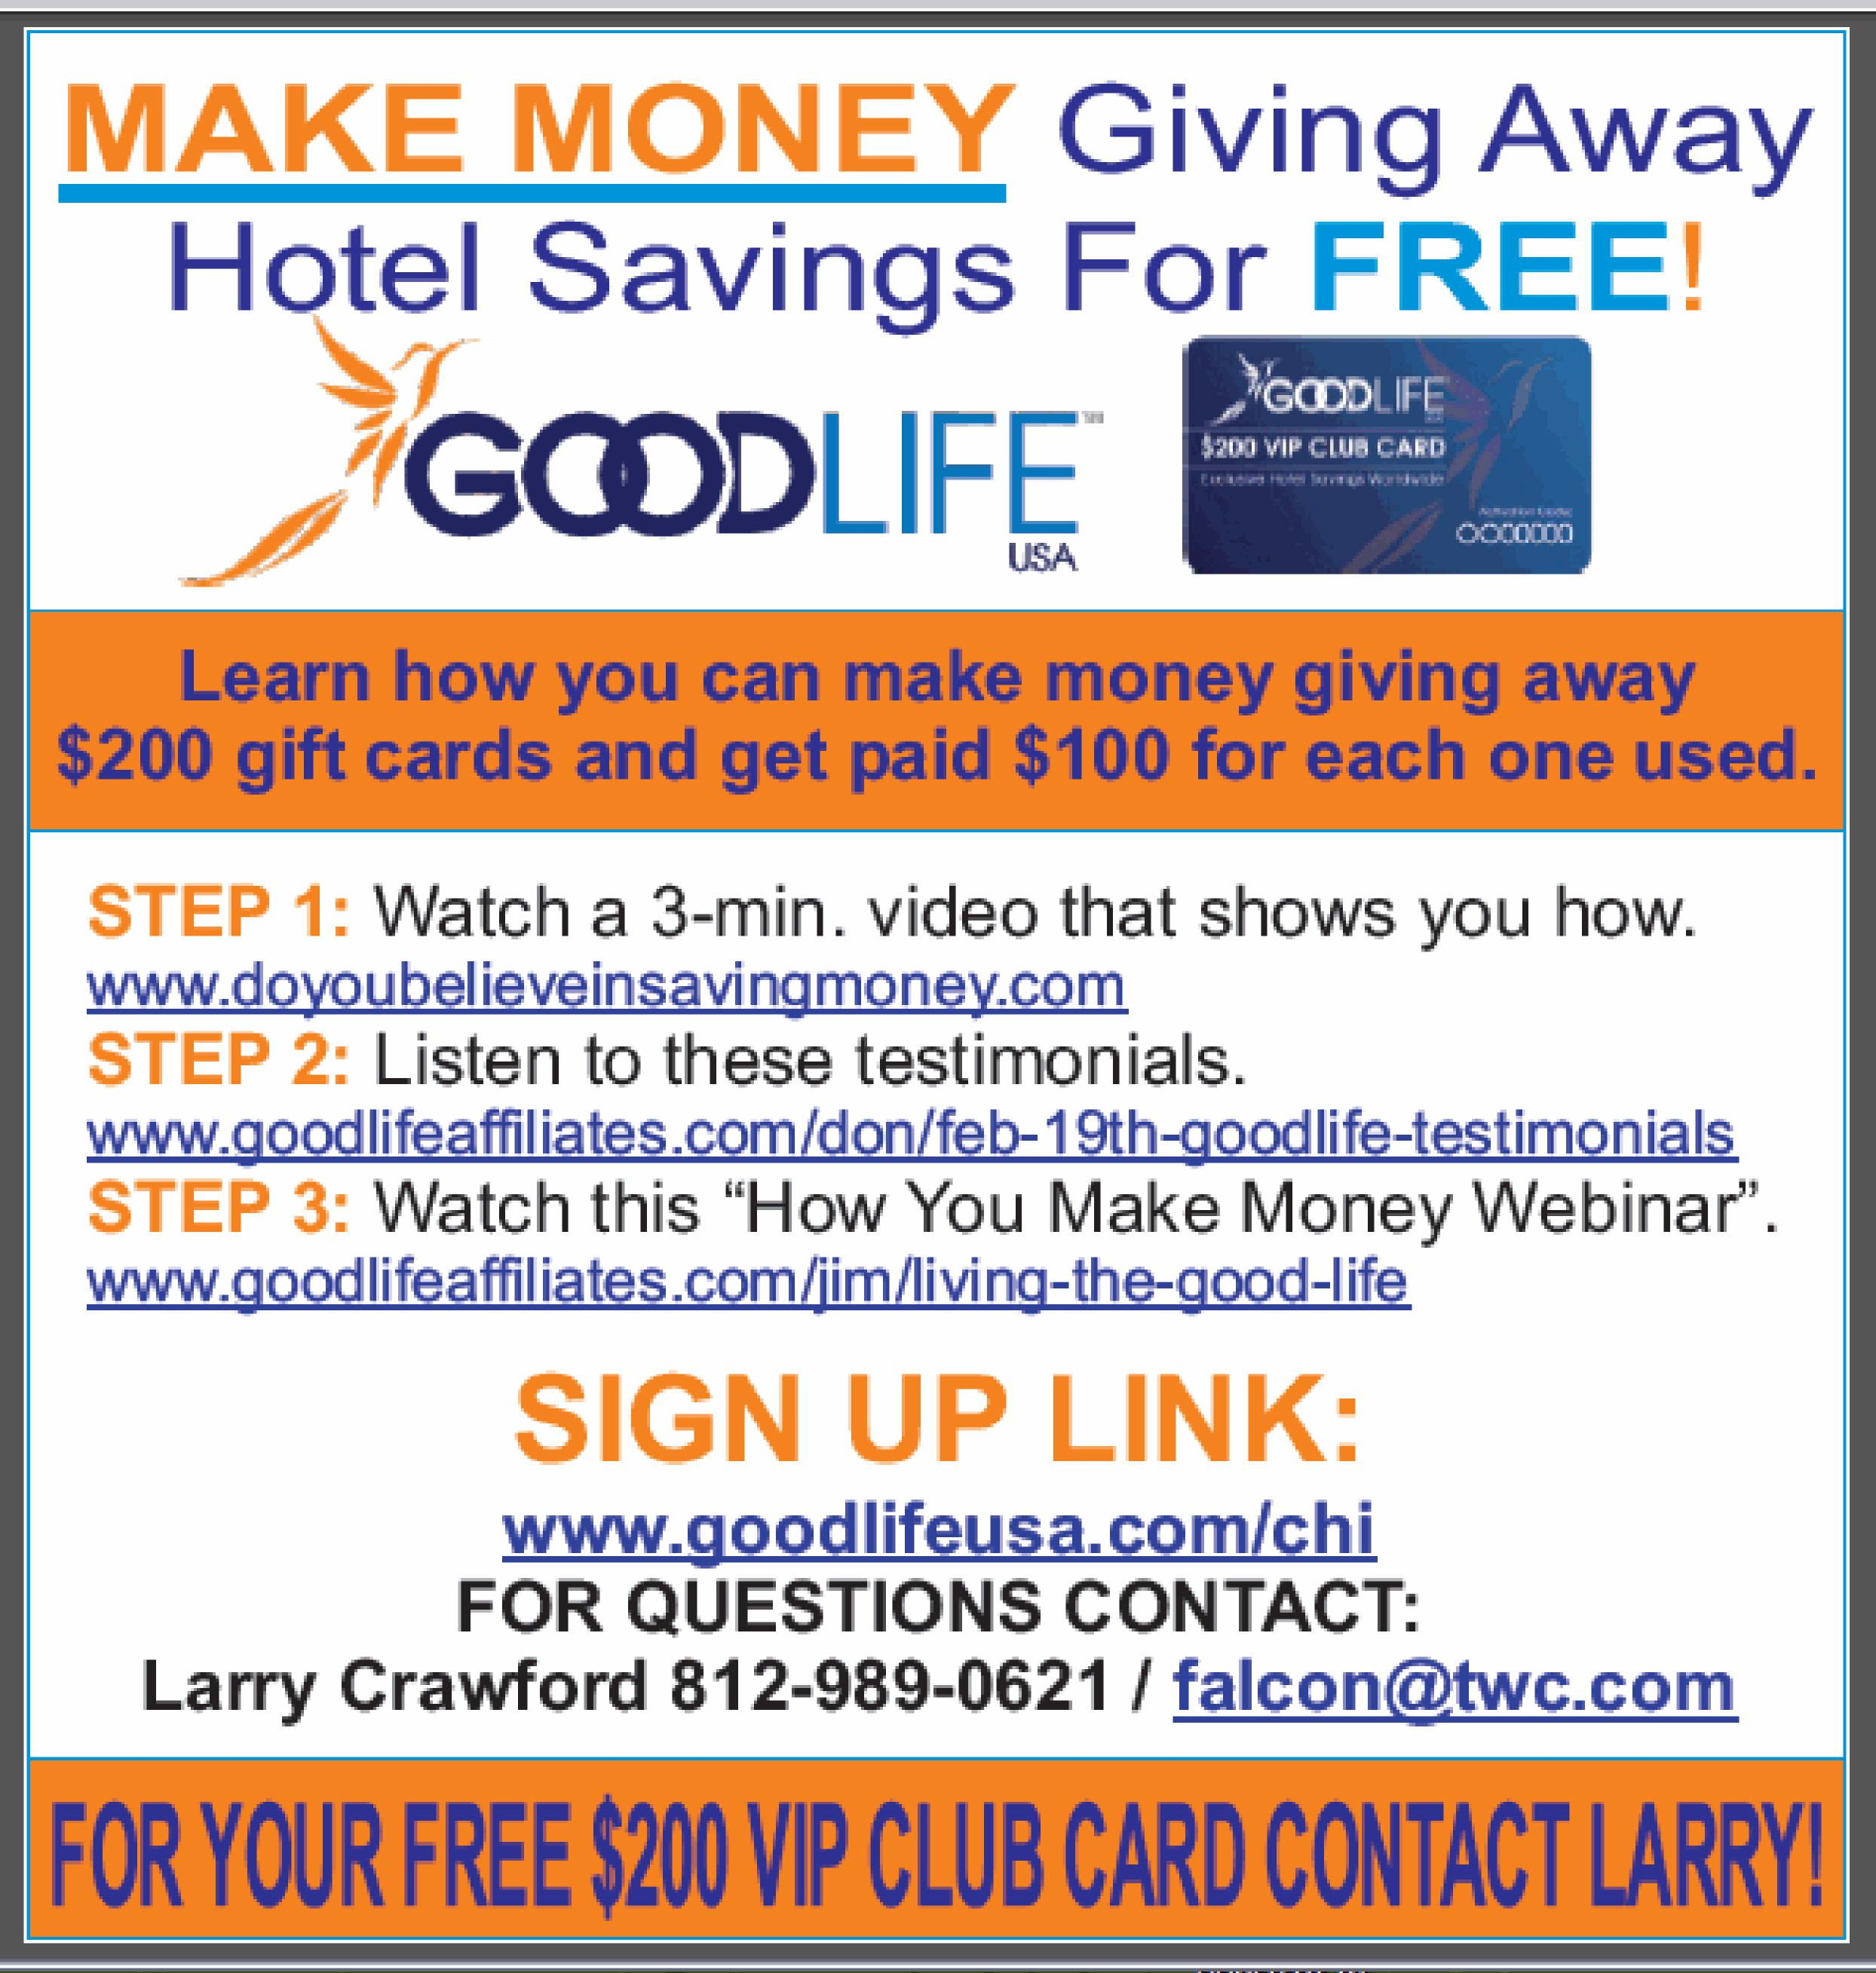 Learn how you can make money giving away $200 gift cards and